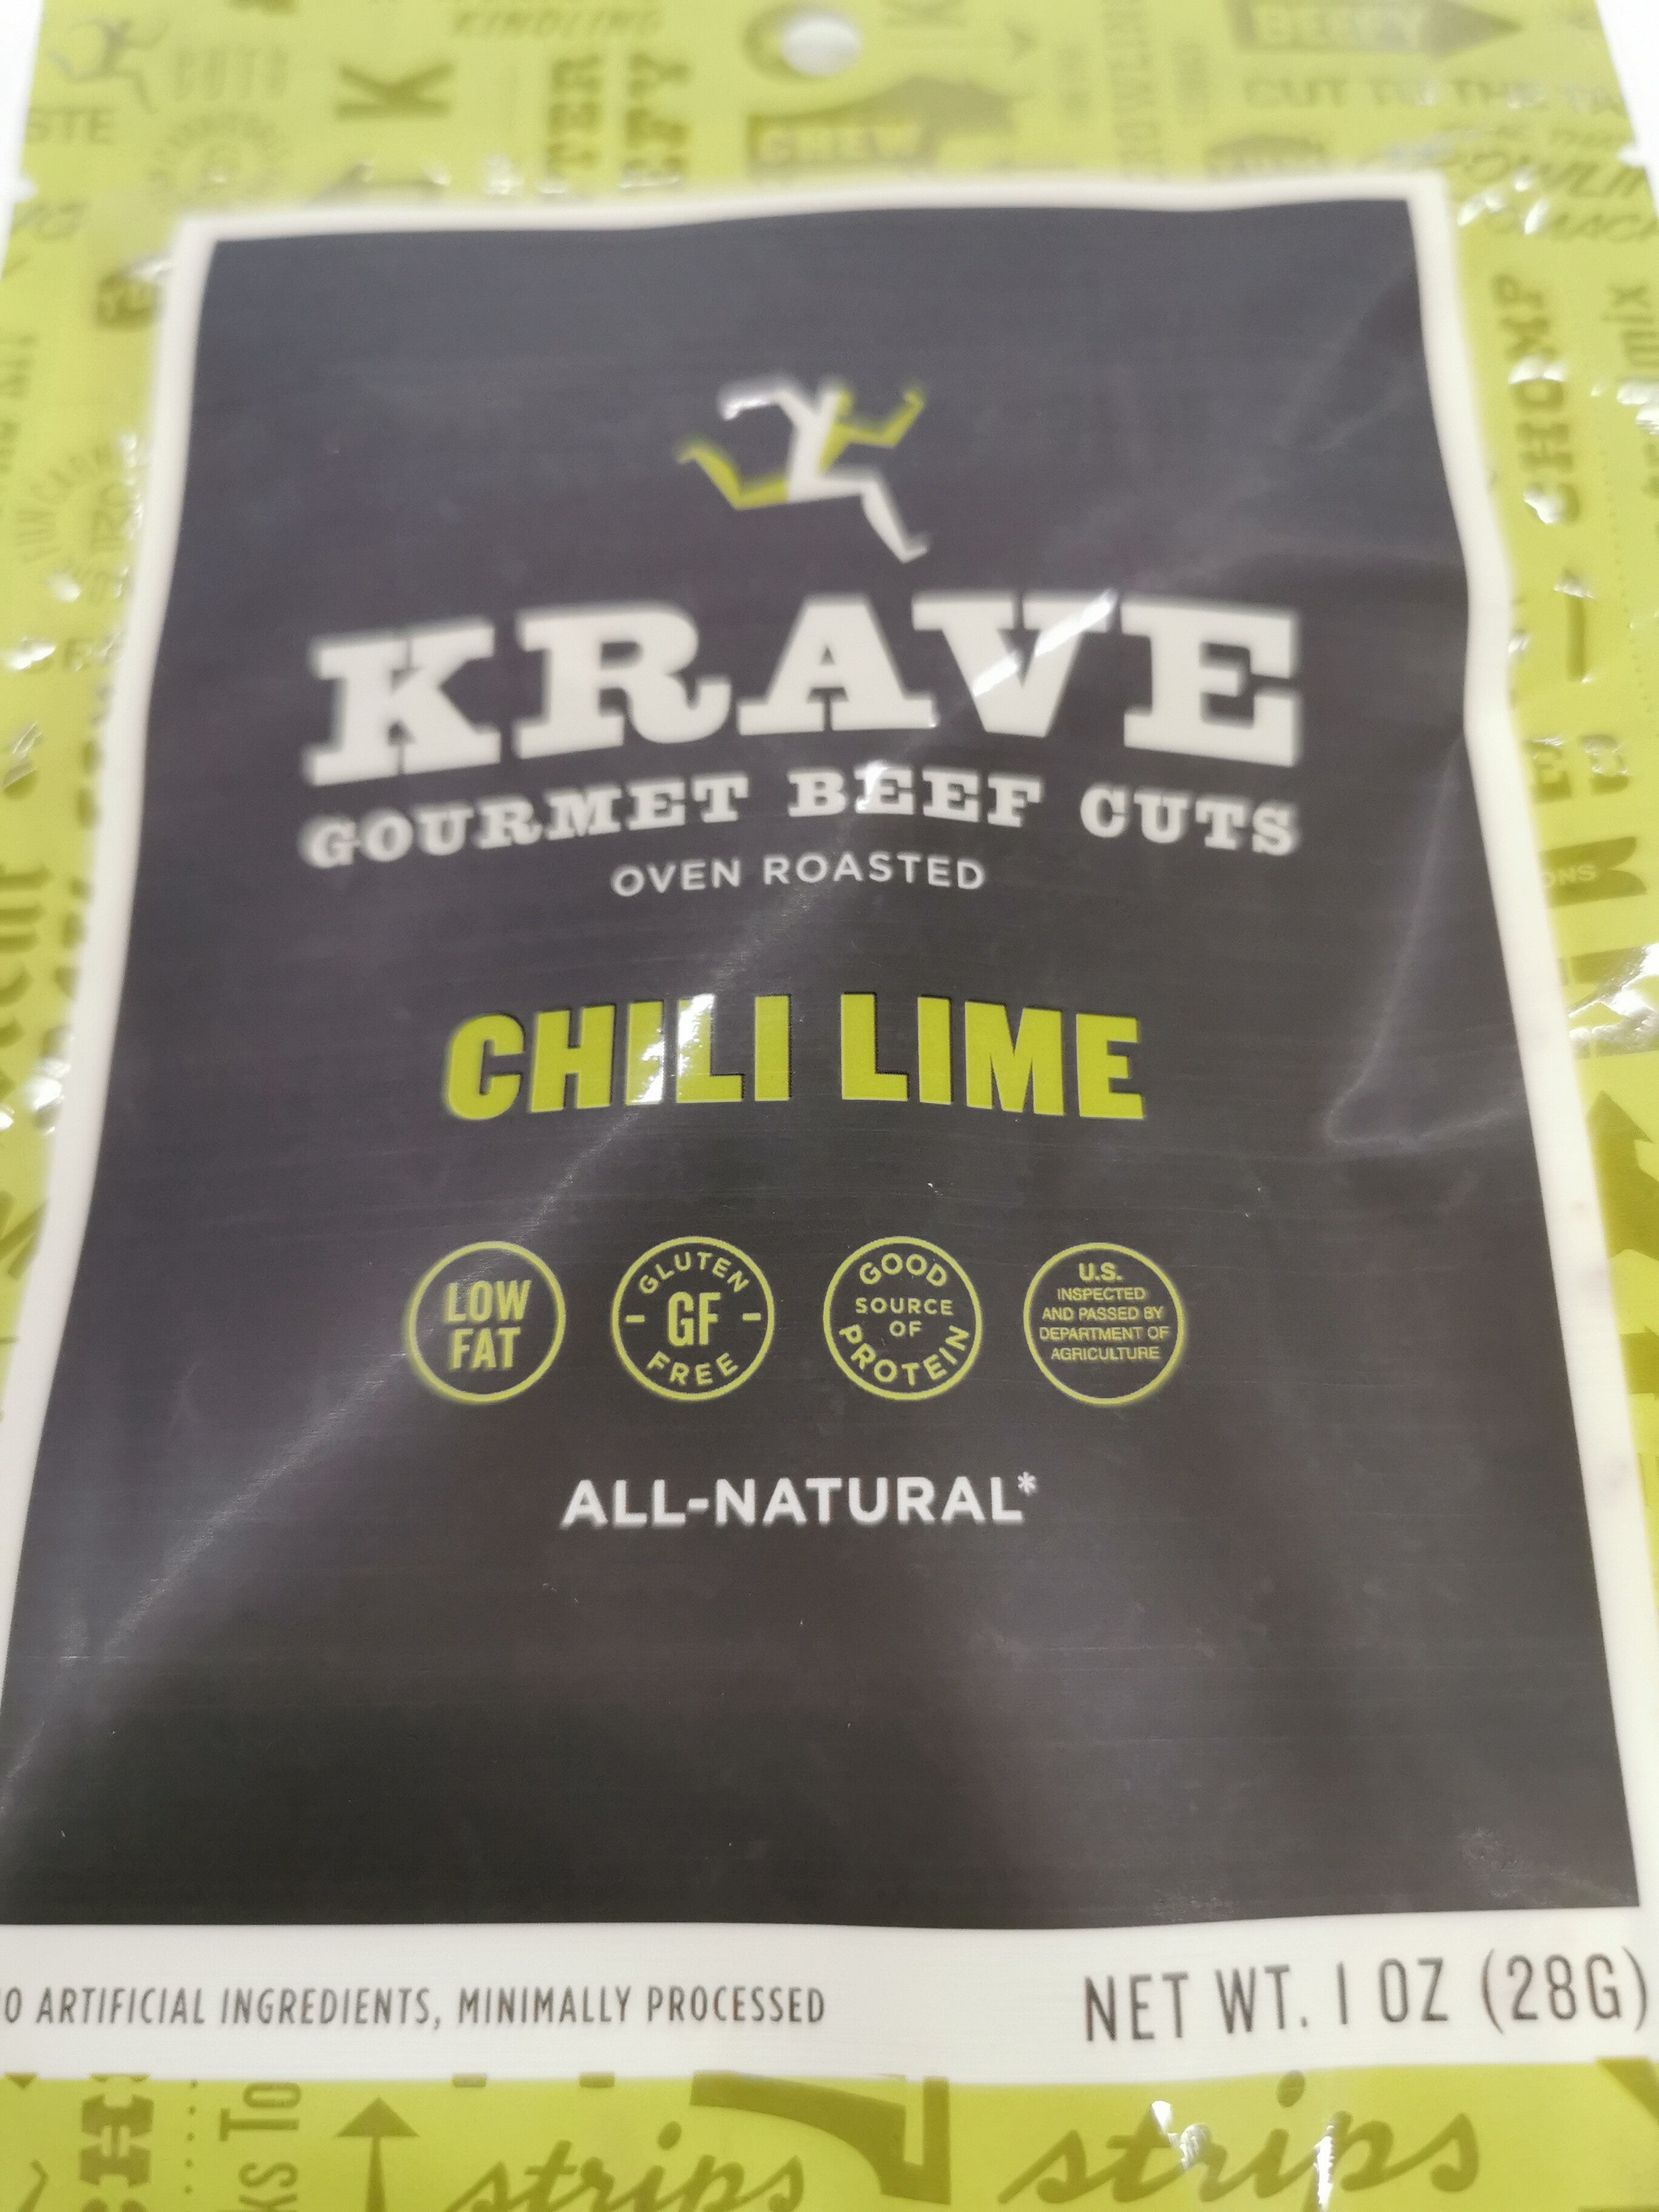 Chili lime - Product - fr